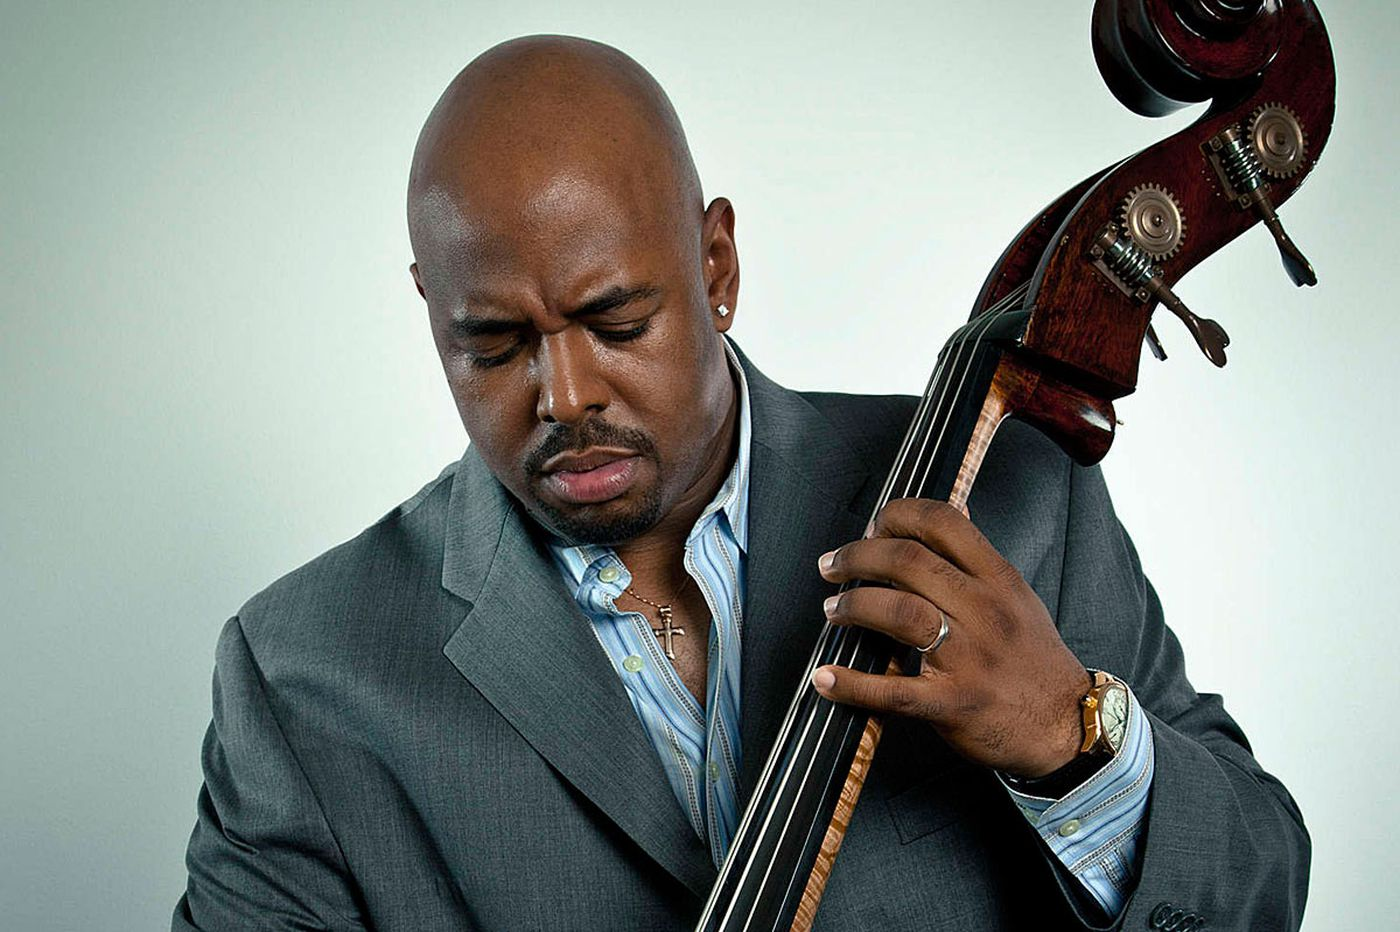 Jazz great Christian McBride has new music to go with famous civil rights speeches